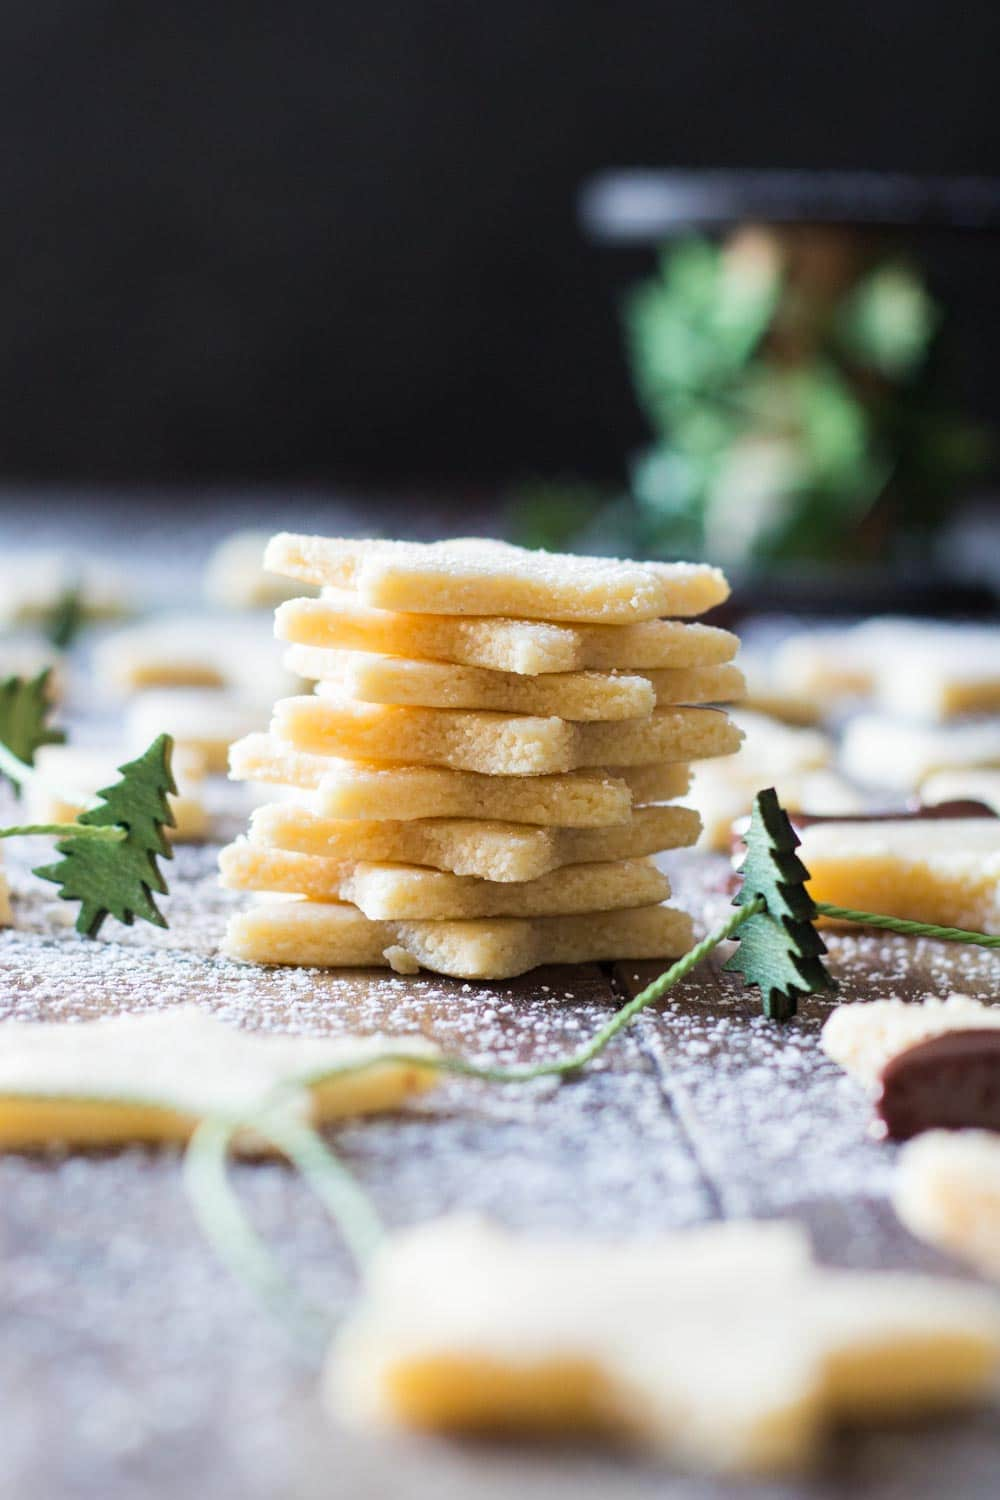 These are the most amazing melt-in-yout-mouth 2 Ingredient Almond Cookies you will try in your life! Almond flour, maple syrup, a cookie cutter and go!